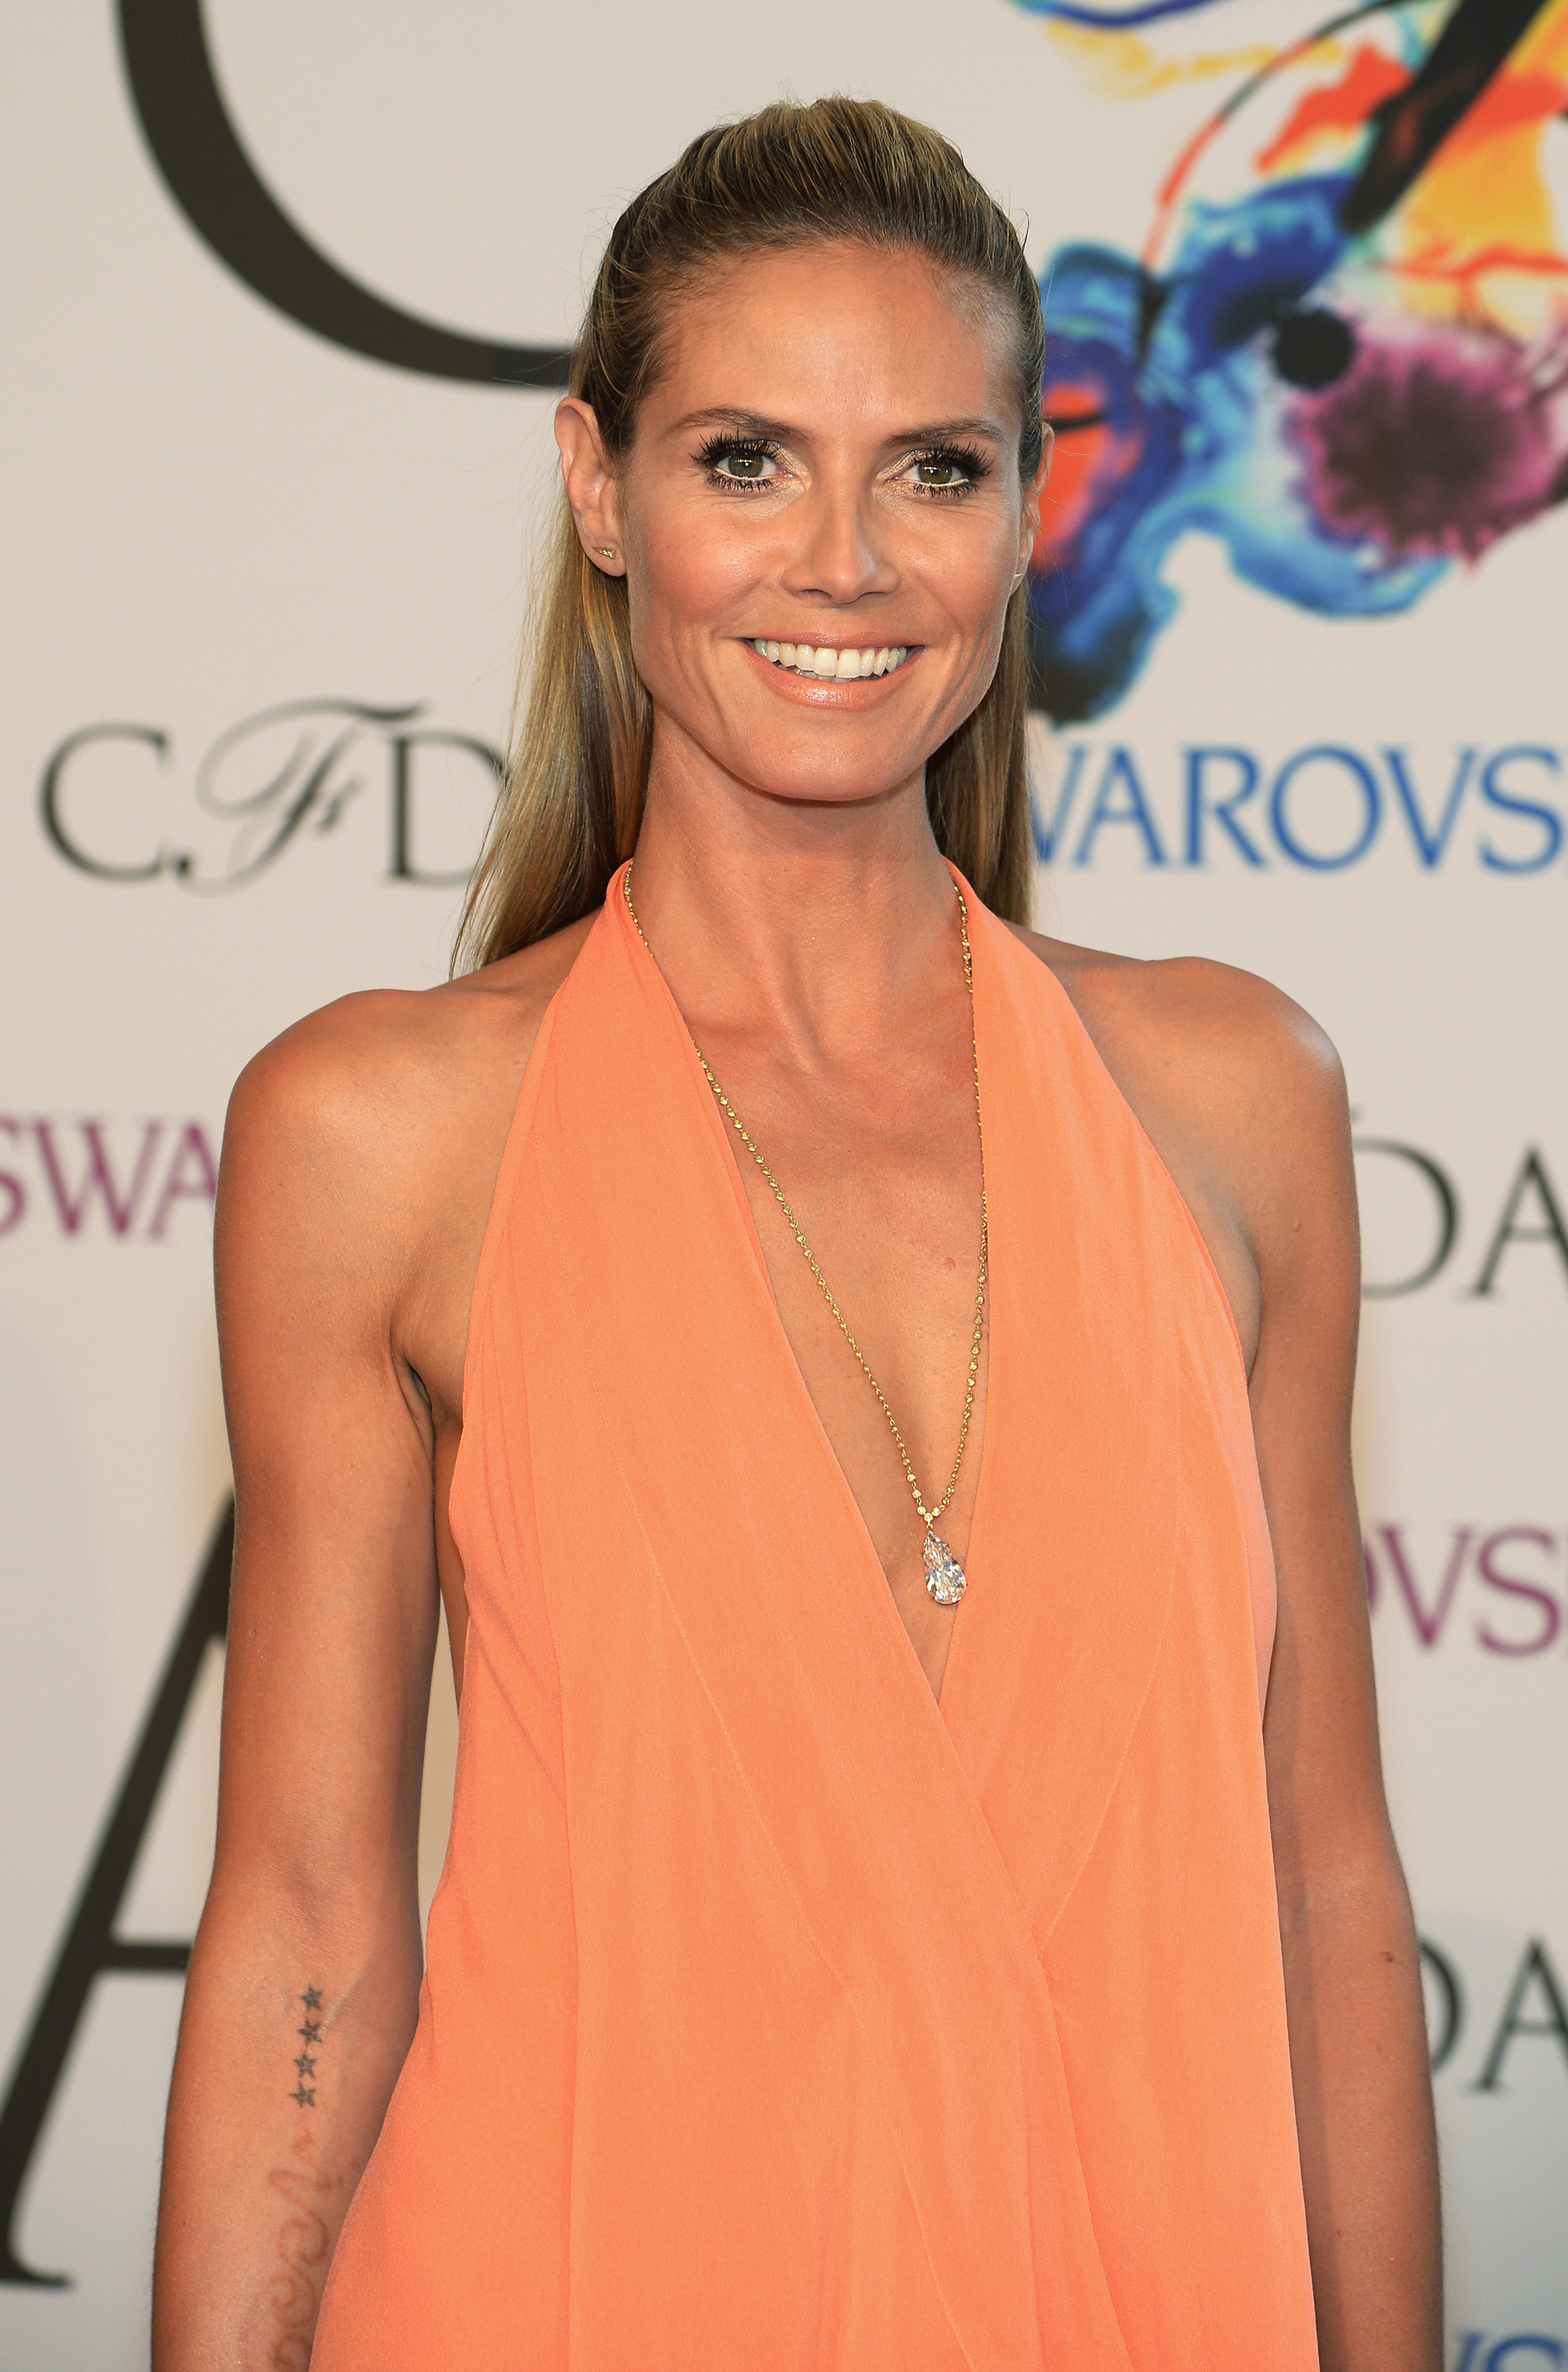 Heidi Klum wearing a body chain